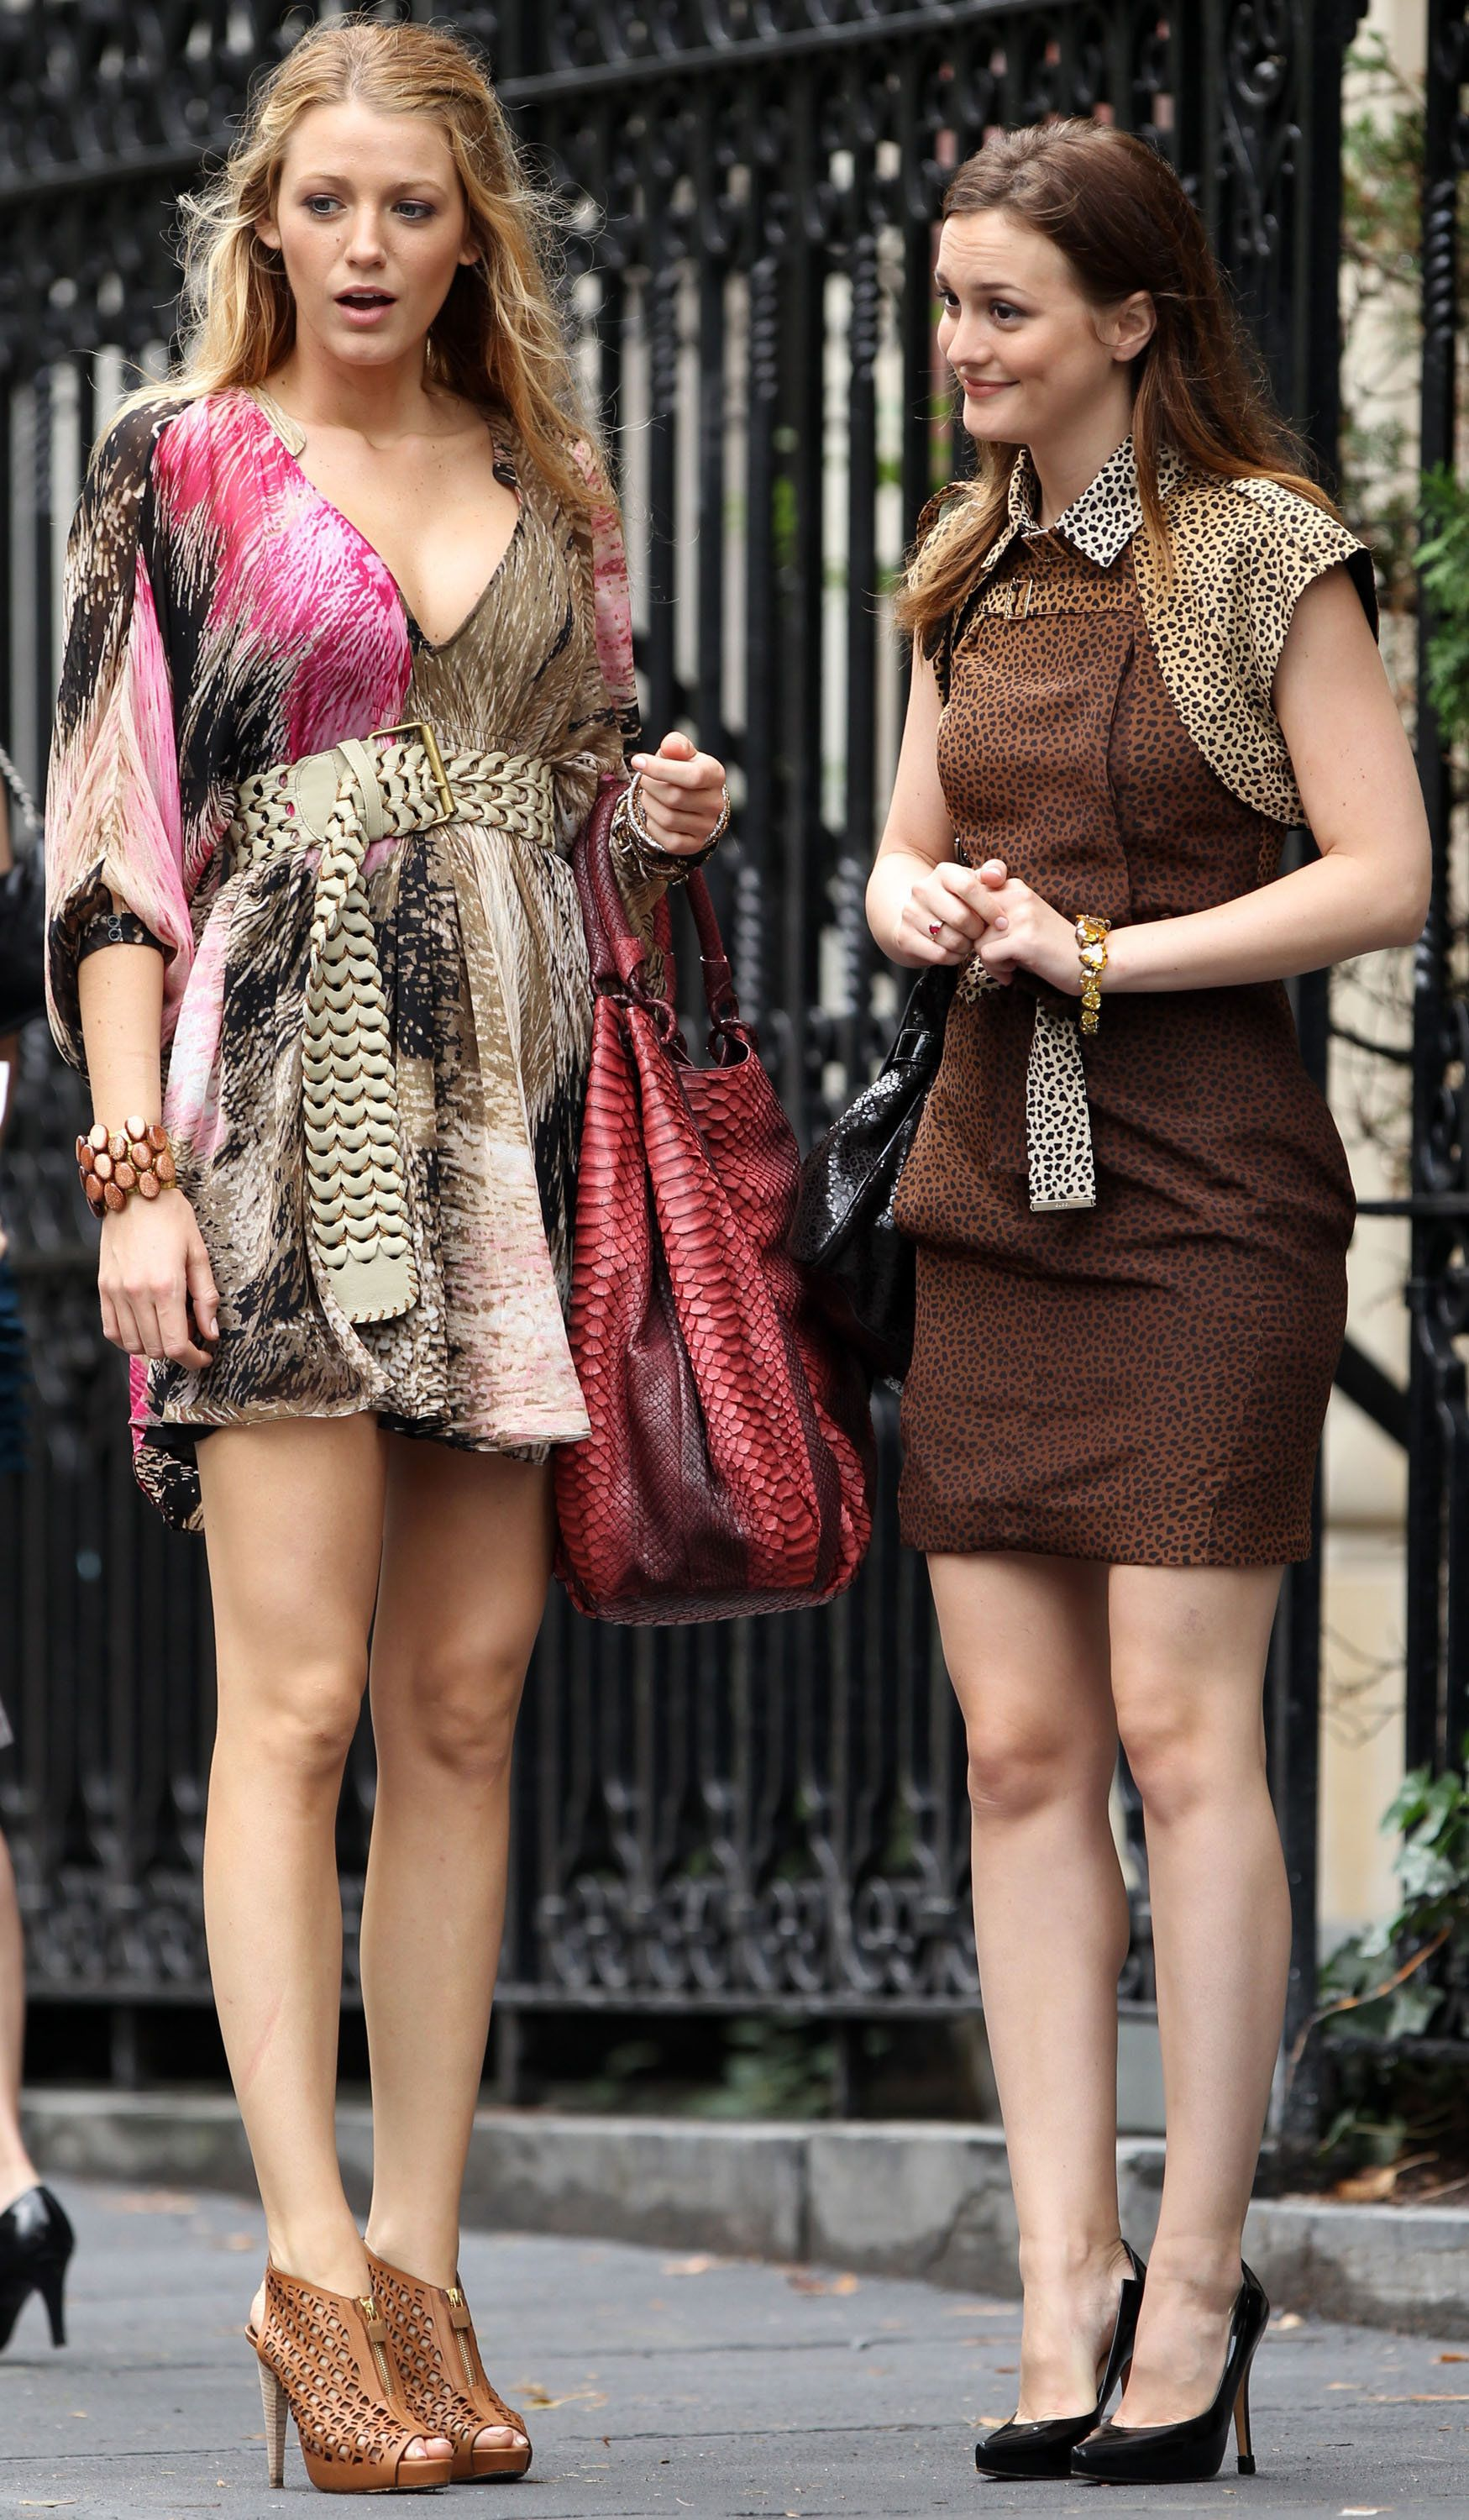 Blake Lively and Leighton Meester (L-R) sighting at the Upper West Side on July 14, 2010 in New York City.